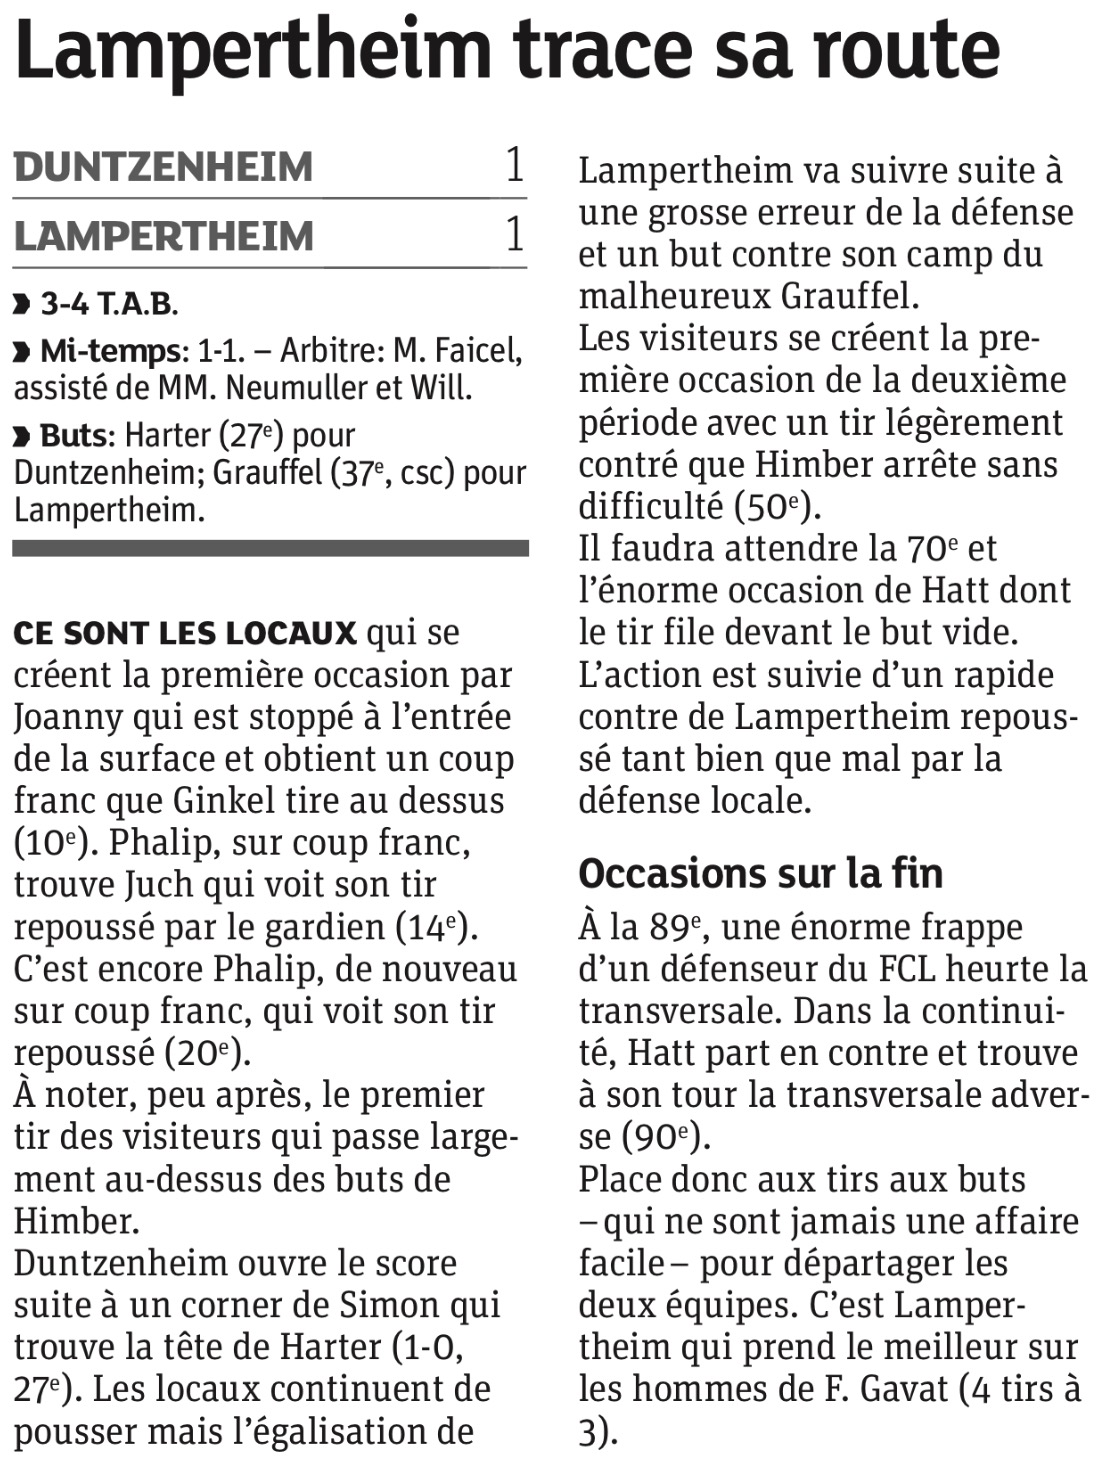 DNA du jour - Lampertheim trace se route